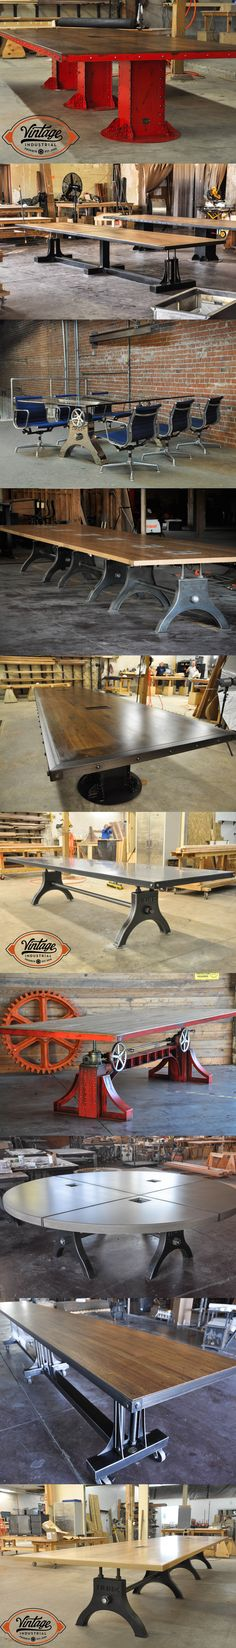 Vintage Industrial offers several conference table options that are all customizable with size, finish, color, dataport, and top material. We build to order in Phoenix! These also make a great community table. - A Interior Design Vintage Industrial Furniture, Industrial Table, Industrial Office, Cool Furniture, Furniture Design, Style Deco, Conference Table, Deco Design, Vintage Design